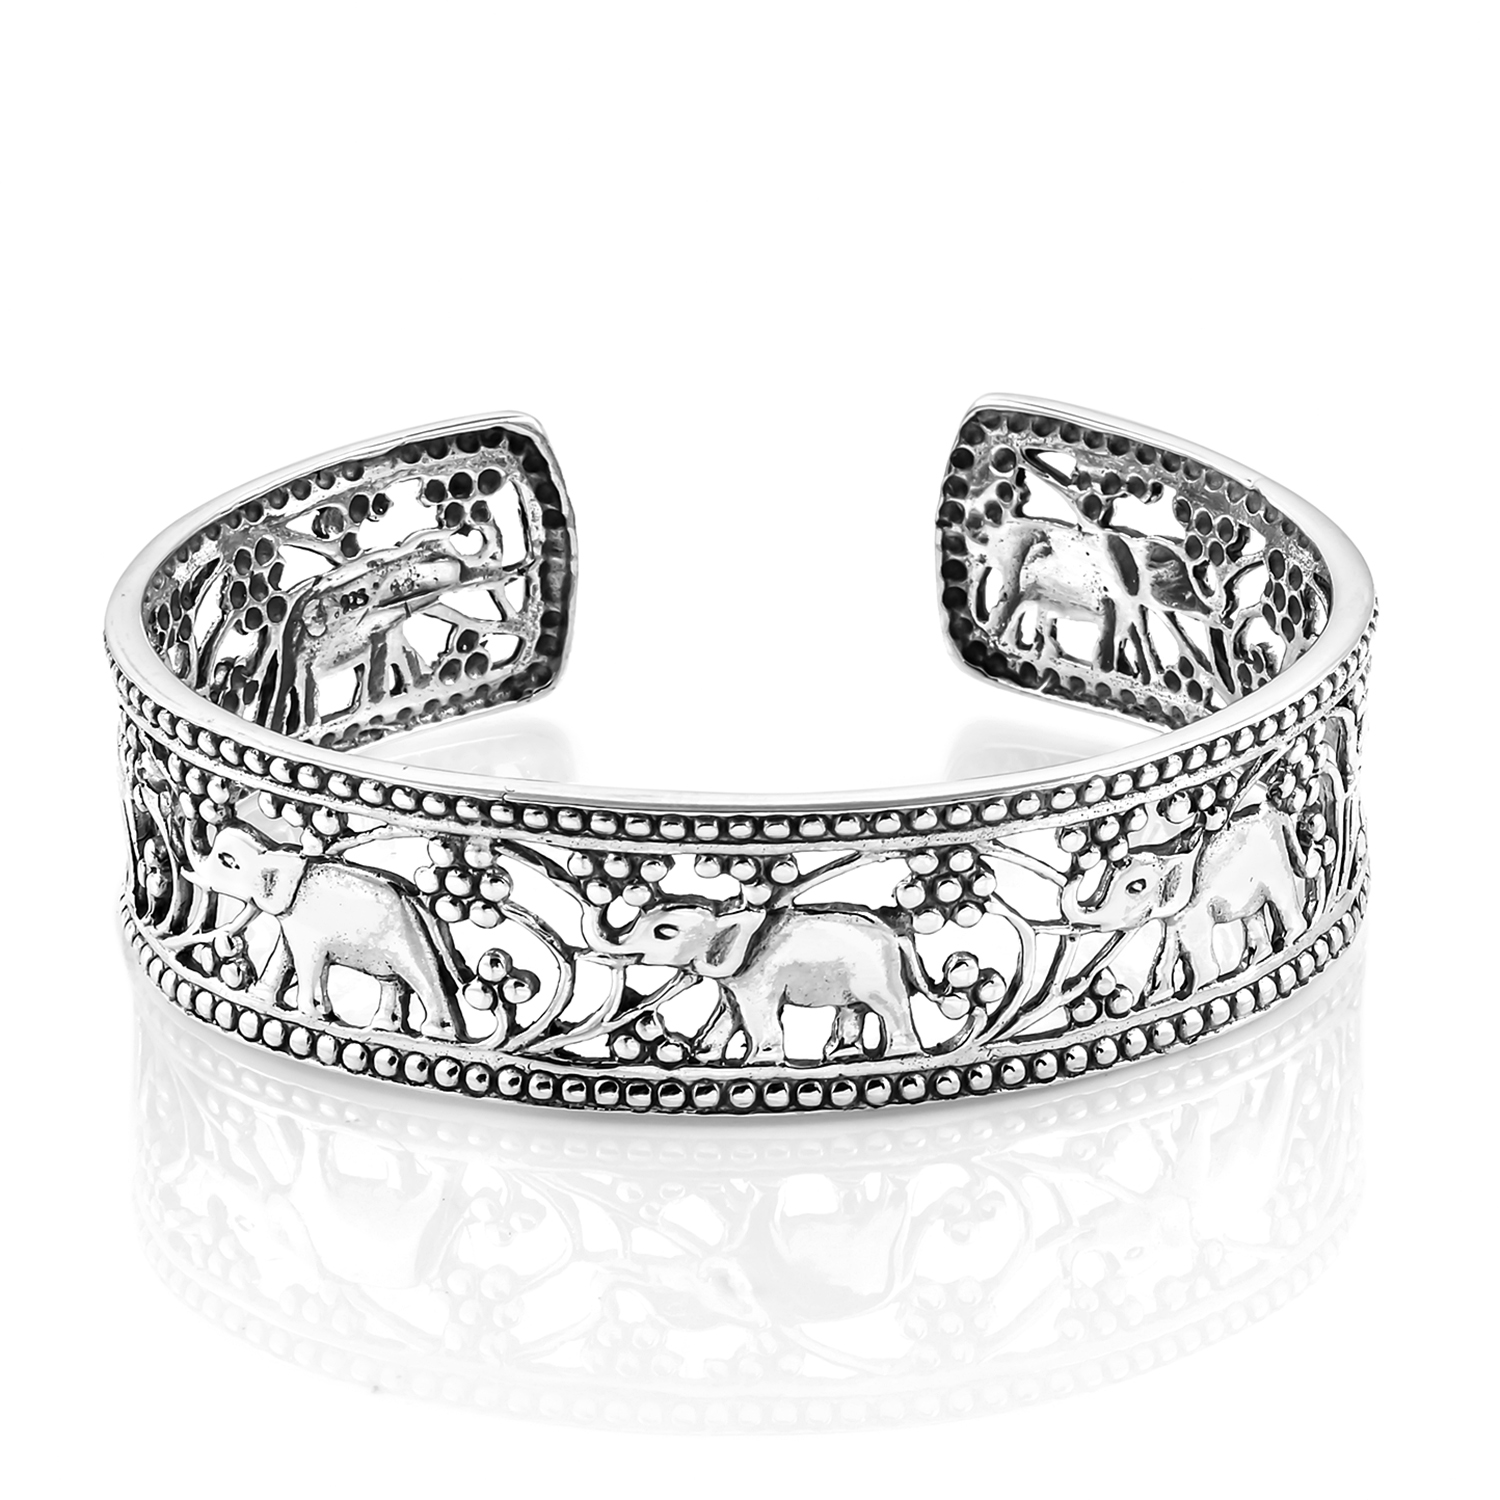 44bb5da6c42aa Bali Legacy Collection Elephant Cuff (7.50 in) in Sterling Silver ...